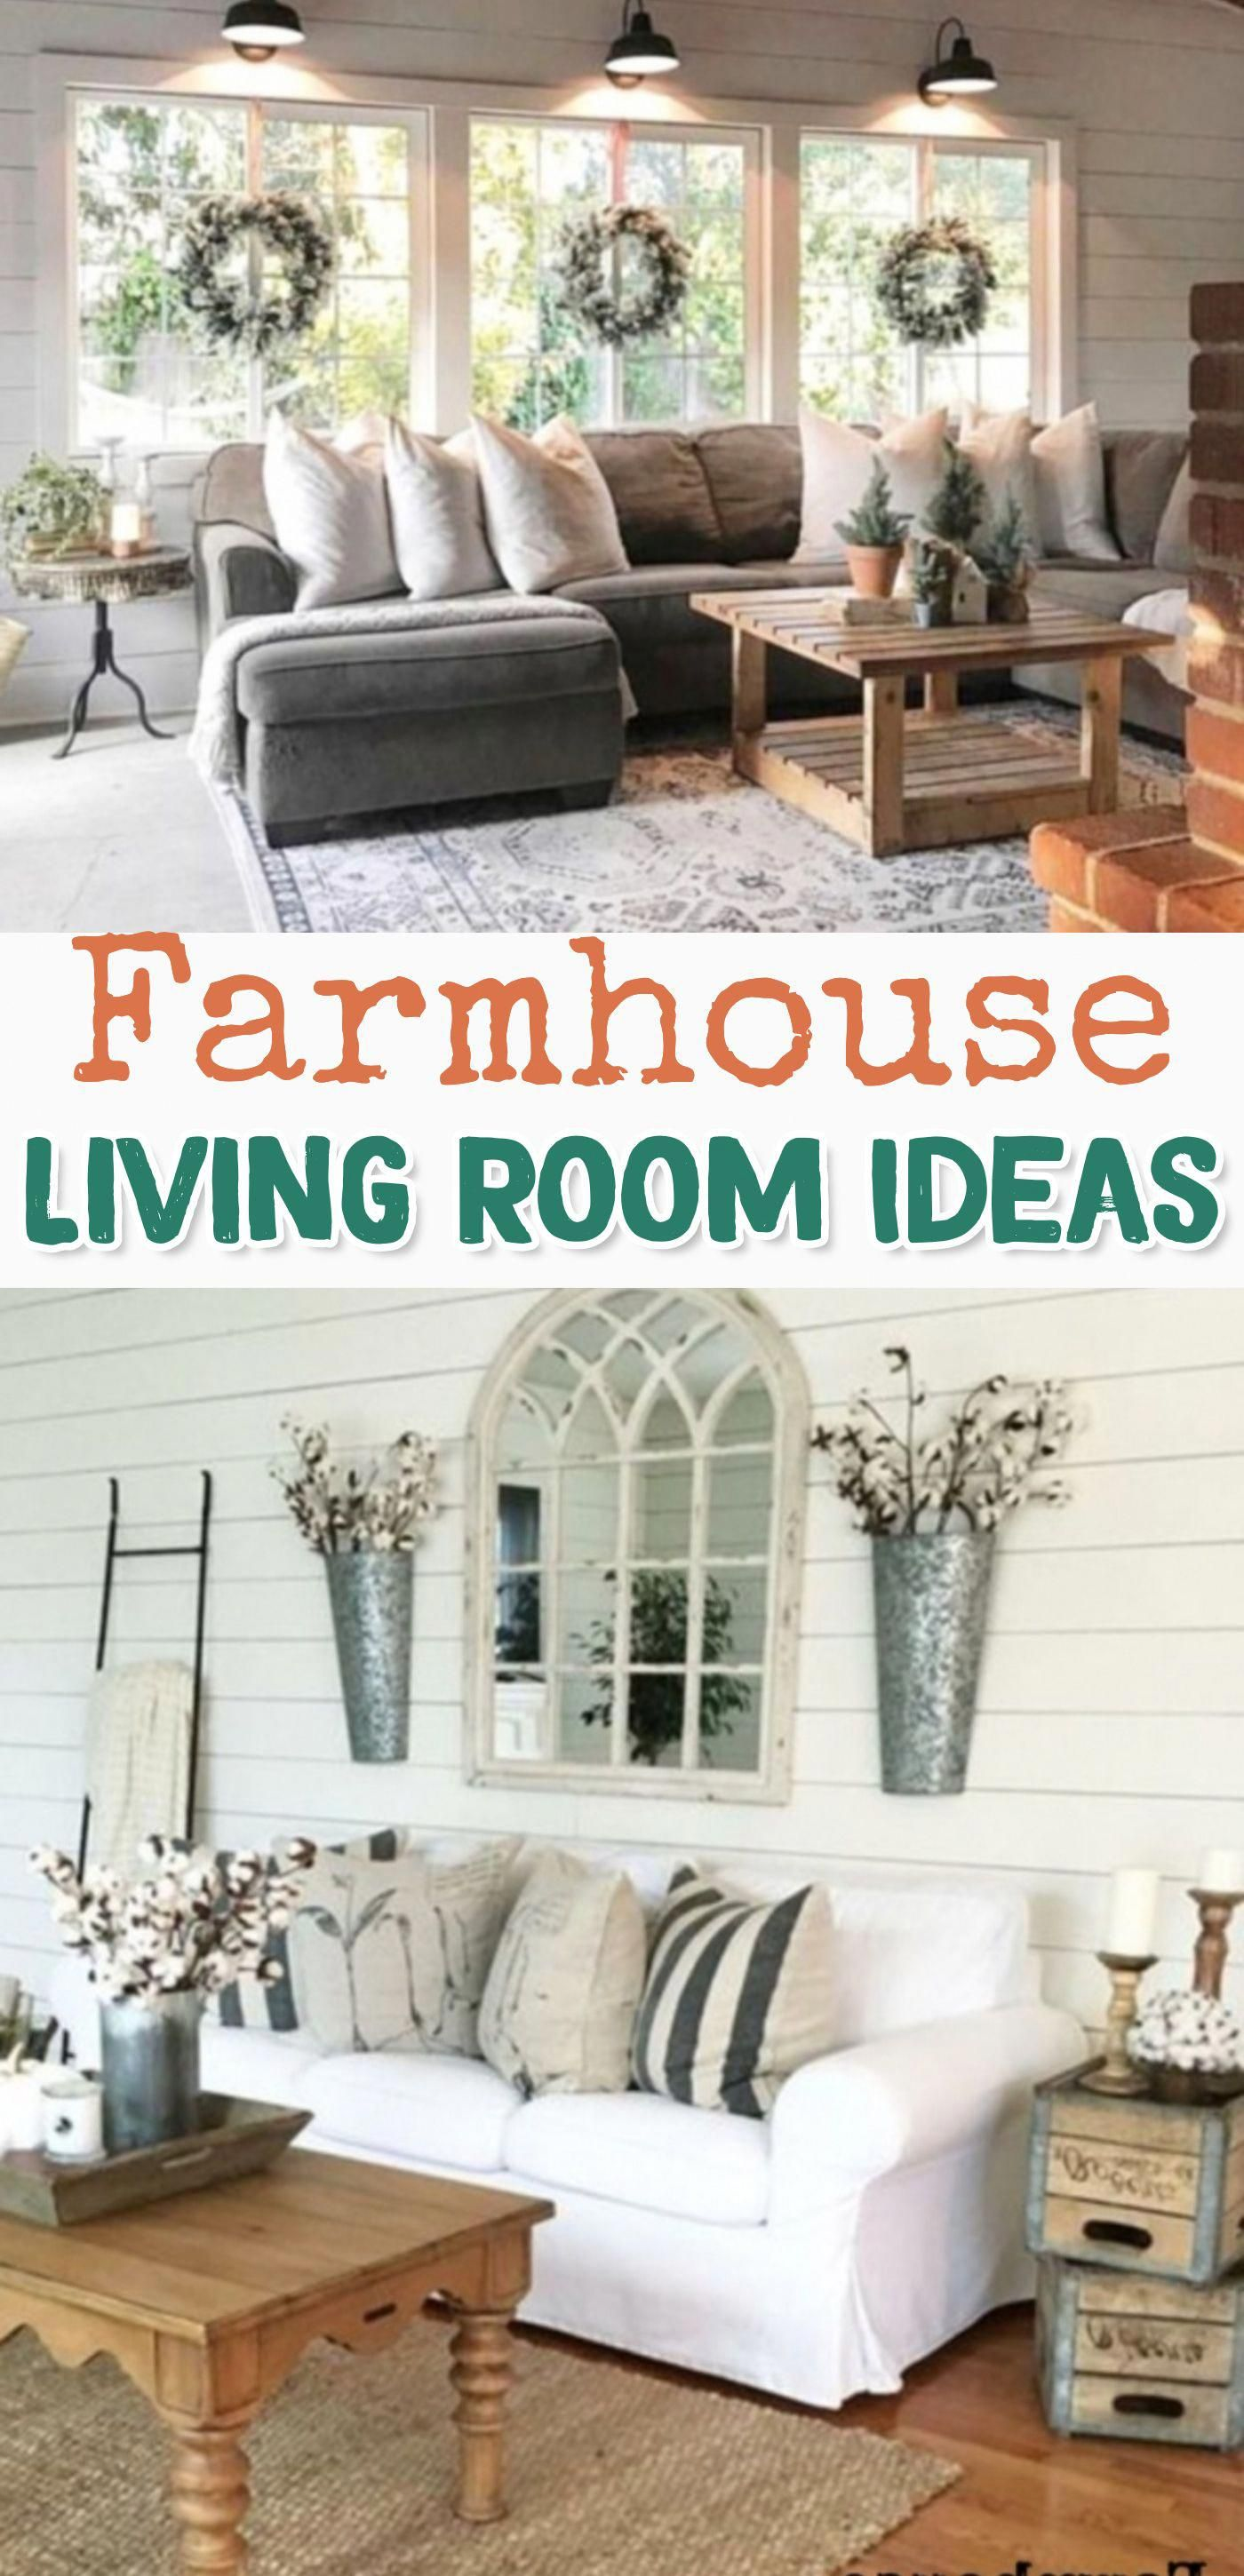 Farmhouse Living room Ideas - GORGEOUS decorating ideas for my living room! #livingroomdecor #livingroomideas #farmhousestyle #farmhouselivingroom #diyhomedecor #homedecor #homedecorideas #diyroomdecor #diyhomedecor #houseideas #farmhouseliving #farmhouselivingroomideas #cottagedecor